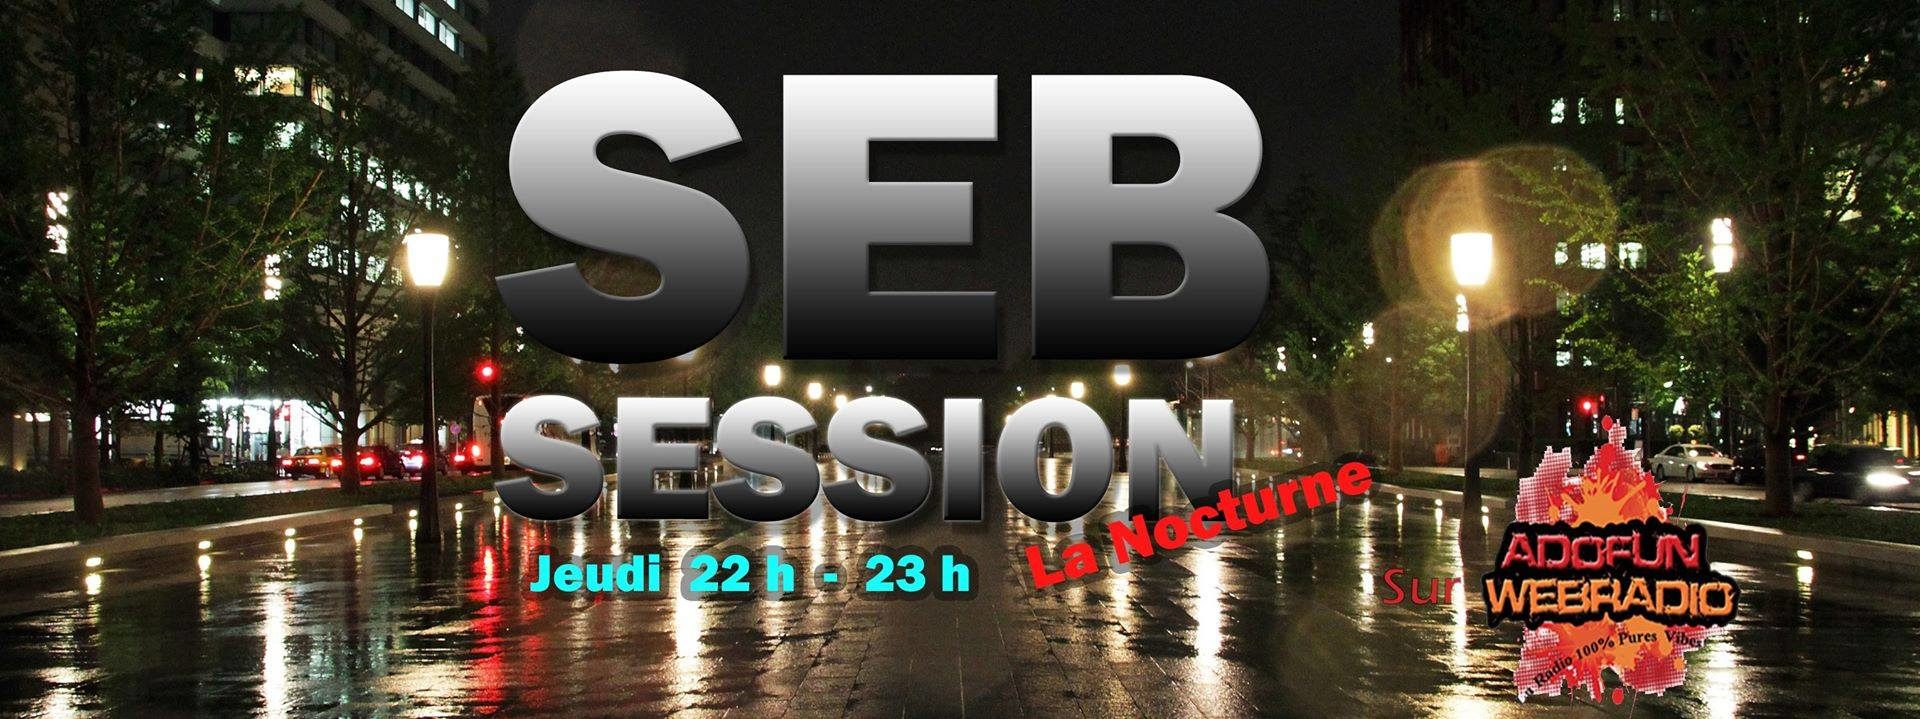 Seb Session - La nocturne